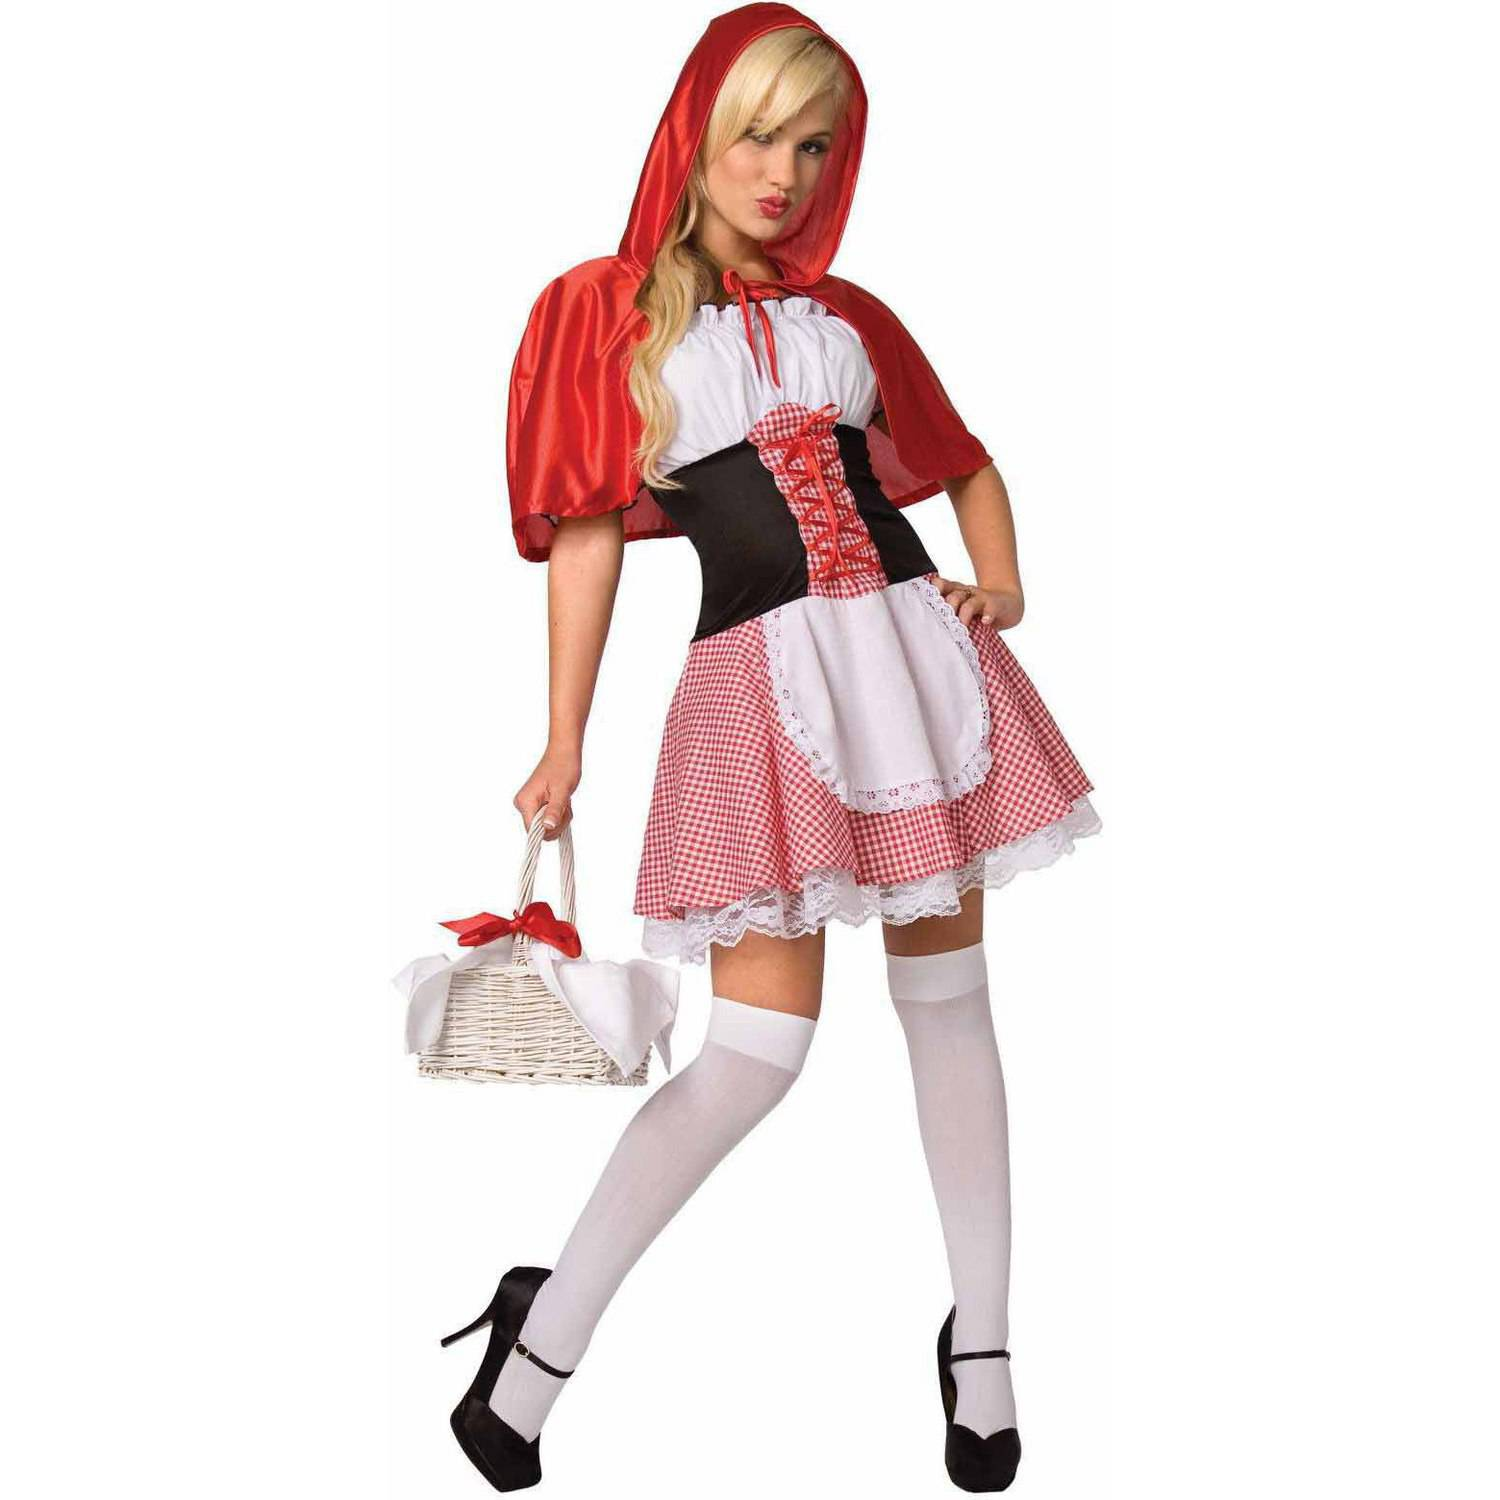 Red Riding Hood Women's Adult Halloween Costume